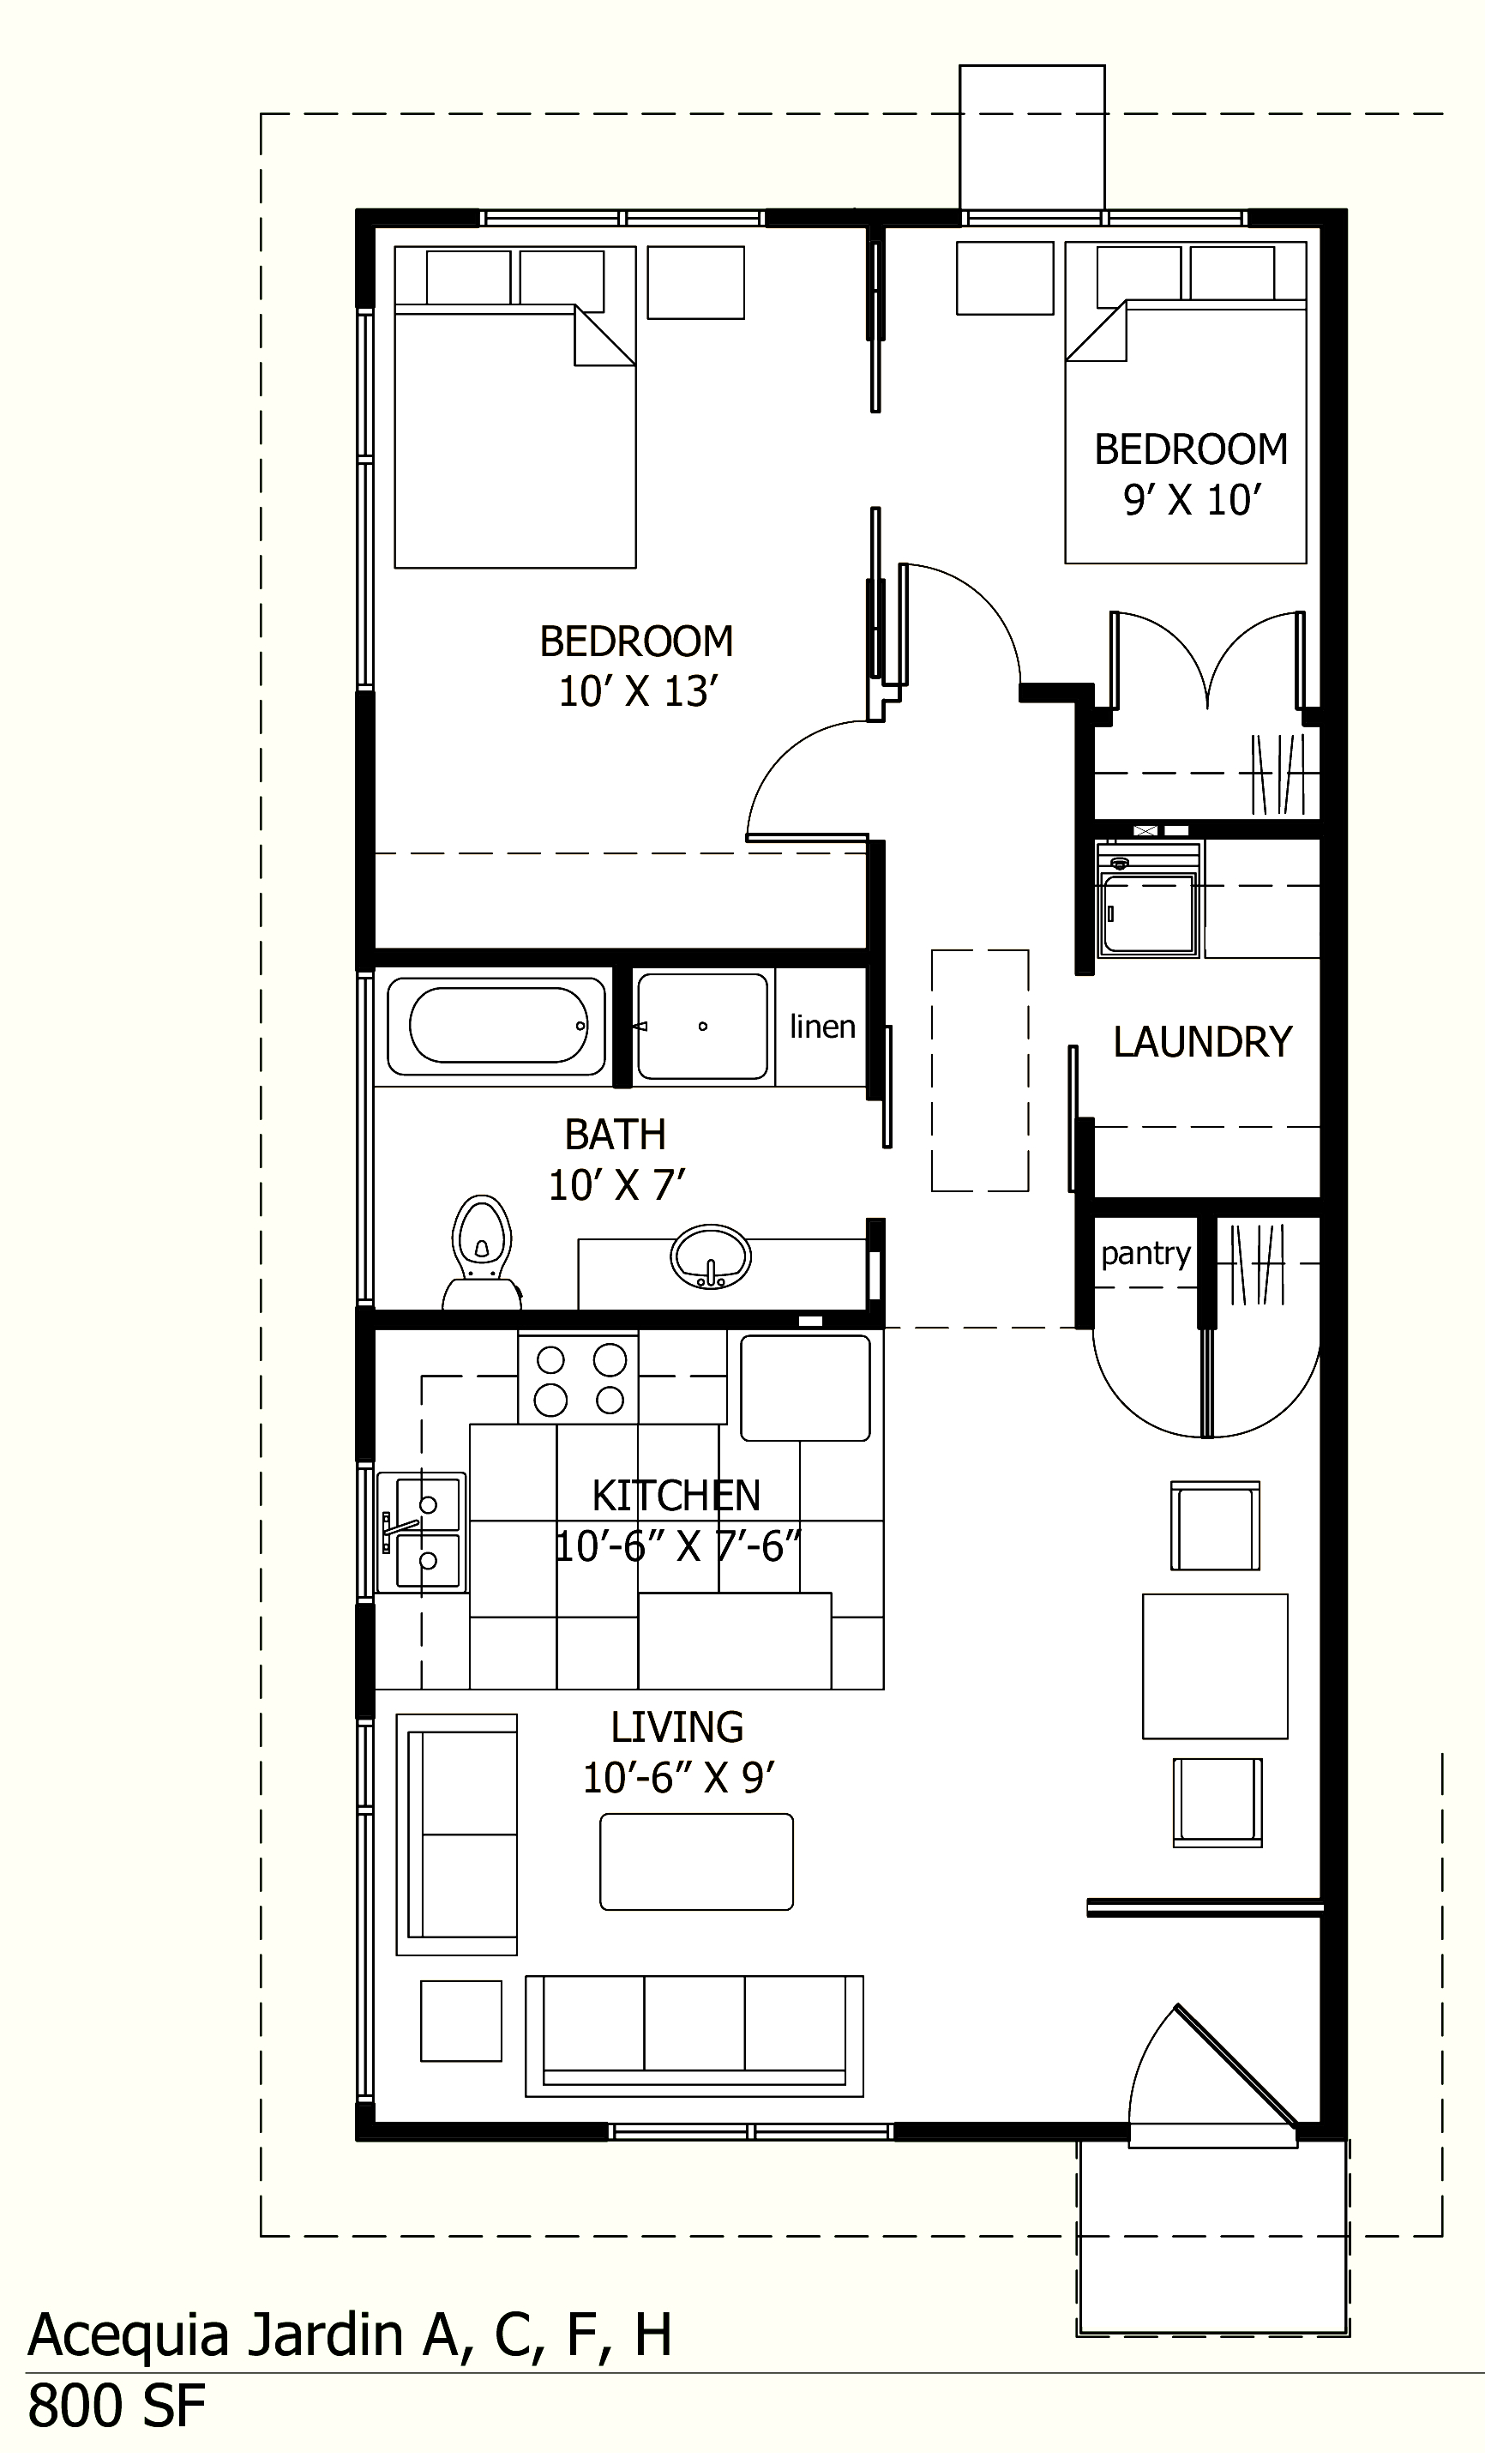 800 sq ft acequia jardin Floorplan com